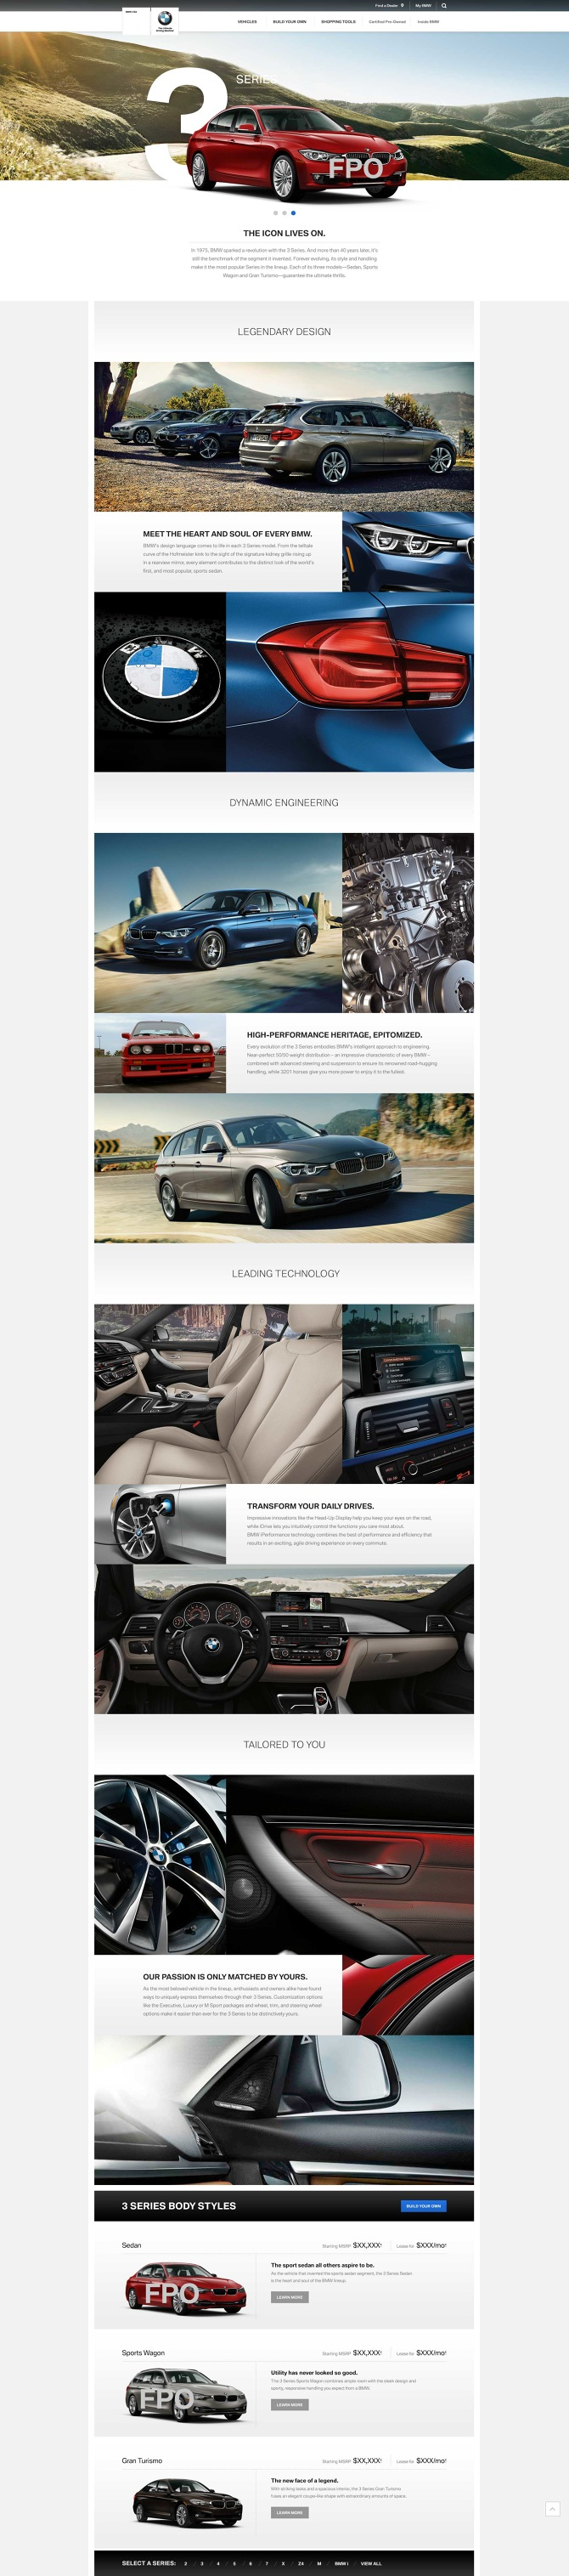 MY16_3Series_Overview_20150722_670.jpg